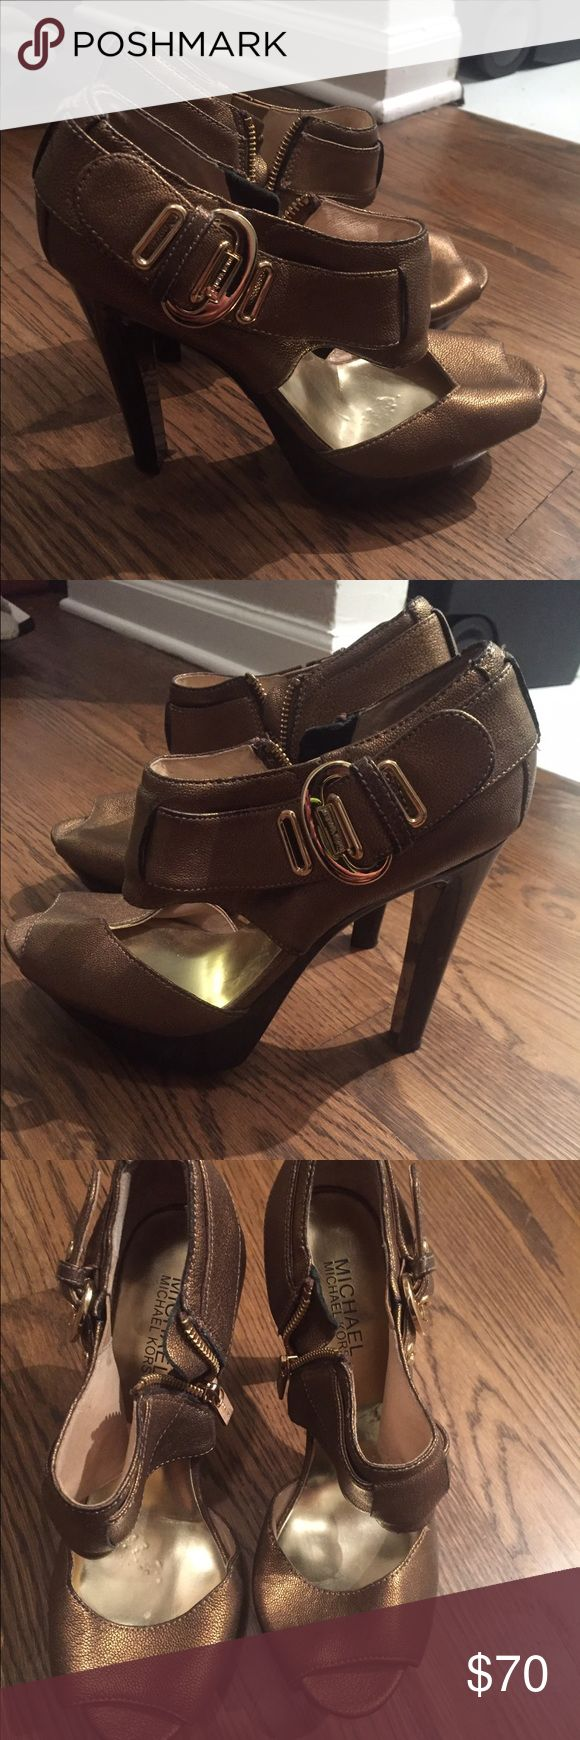 Gold Michael kors heels! Barely worn size 7 Gold michael kors heels great for any occasion barely worn size 7 Michael Kors Shoes Heels